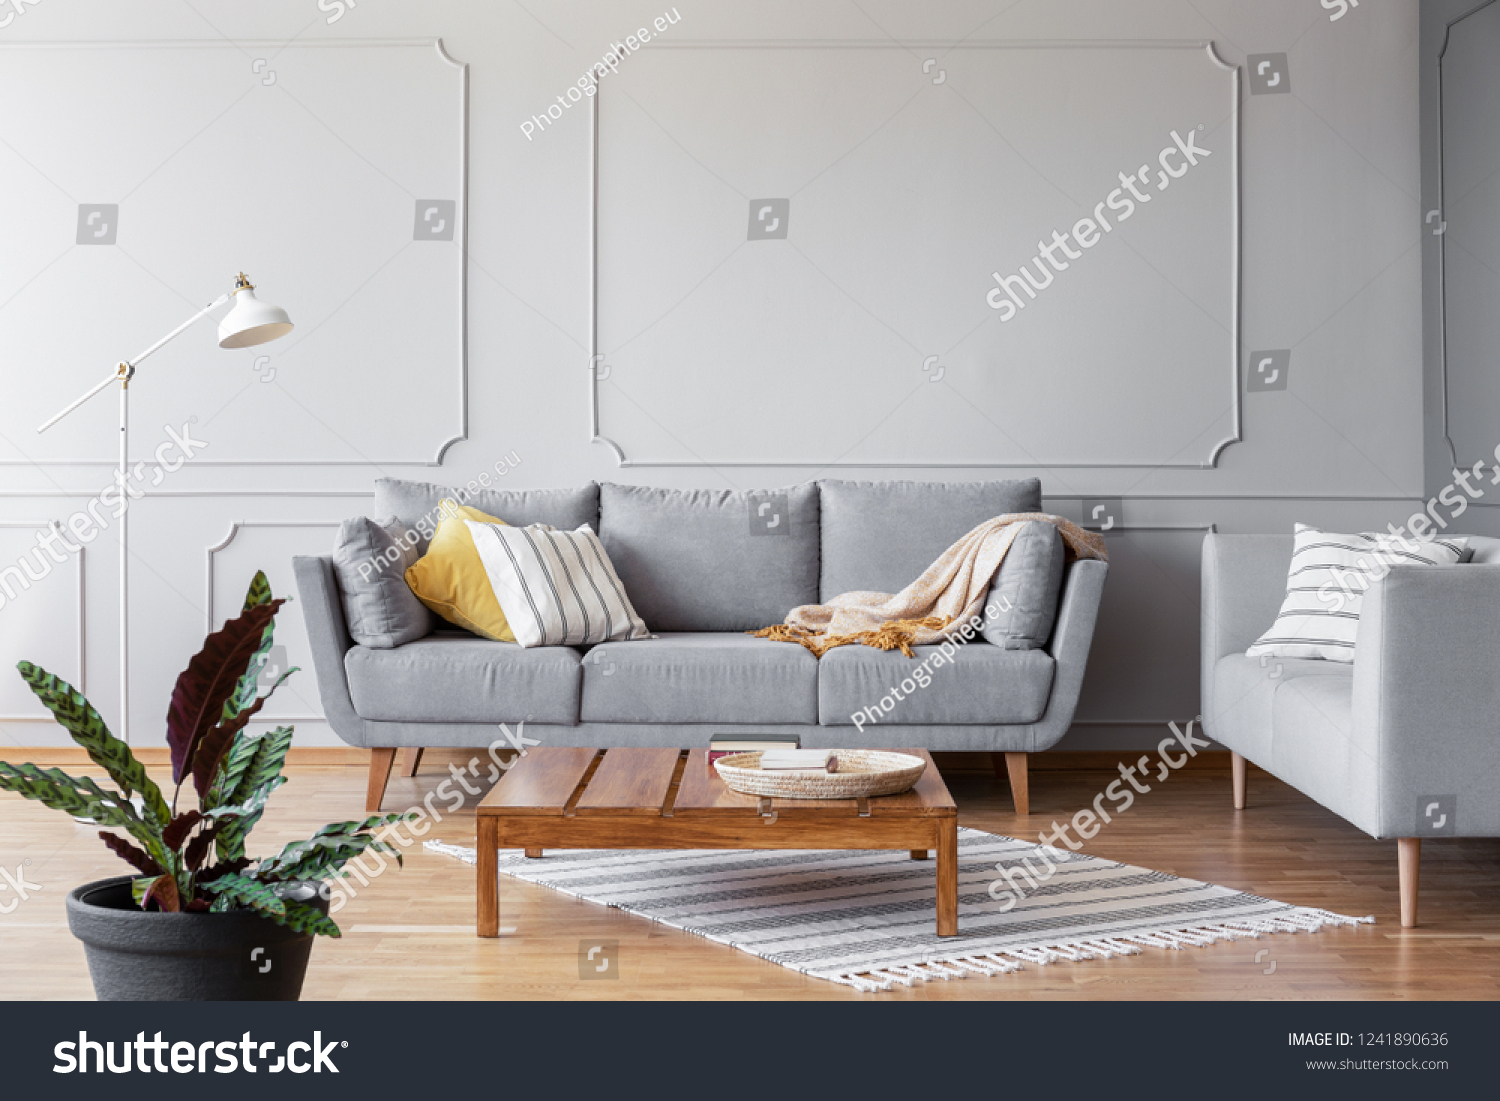 Pleasing Wooden Coffee Table Middle Grey Living Stock Photo Edit Now Machost Co Dining Chair Design Ideas Machostcouk